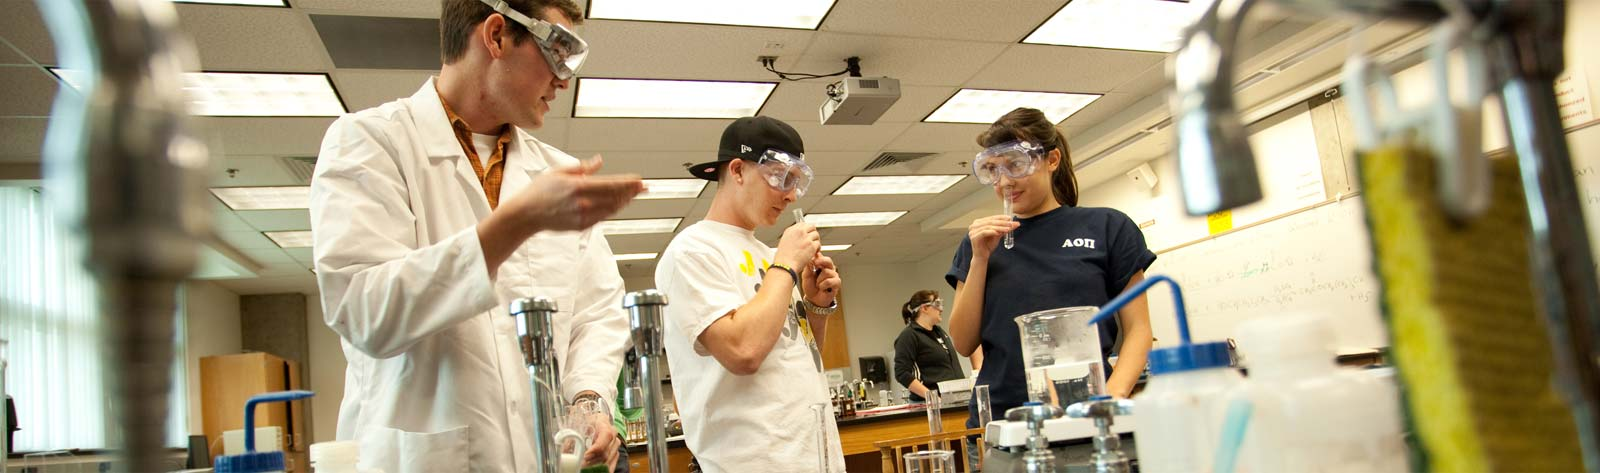 Students doing science